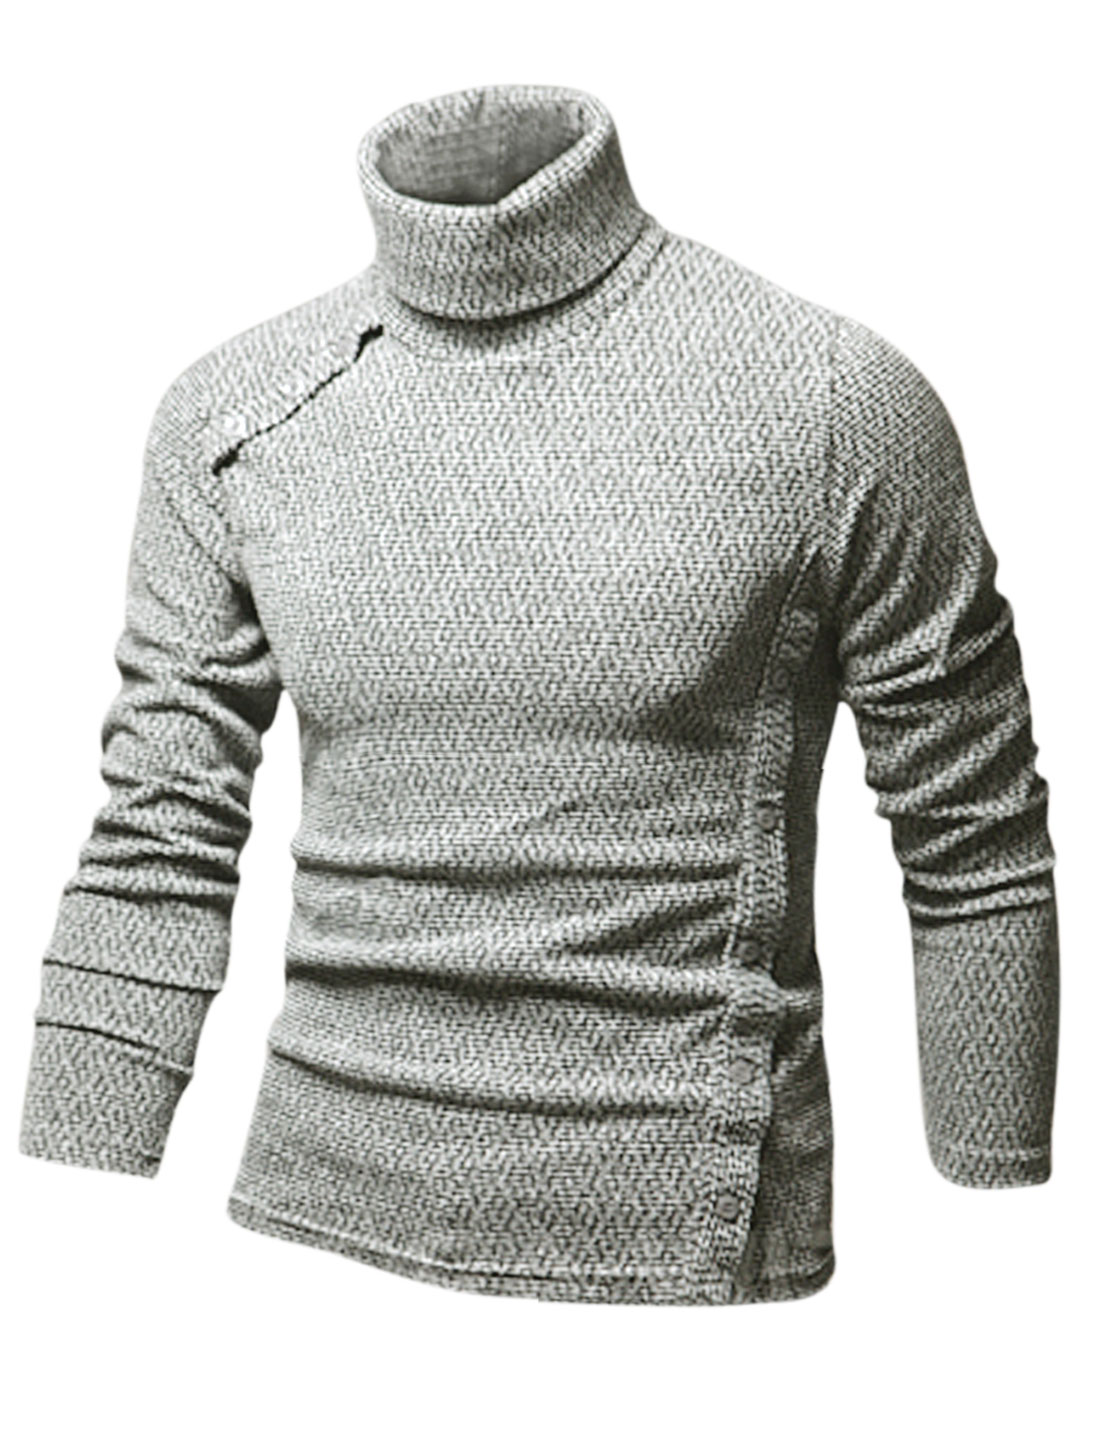 Man Long Sleeve Turtle Neck Casual Shirt Heather Gray M